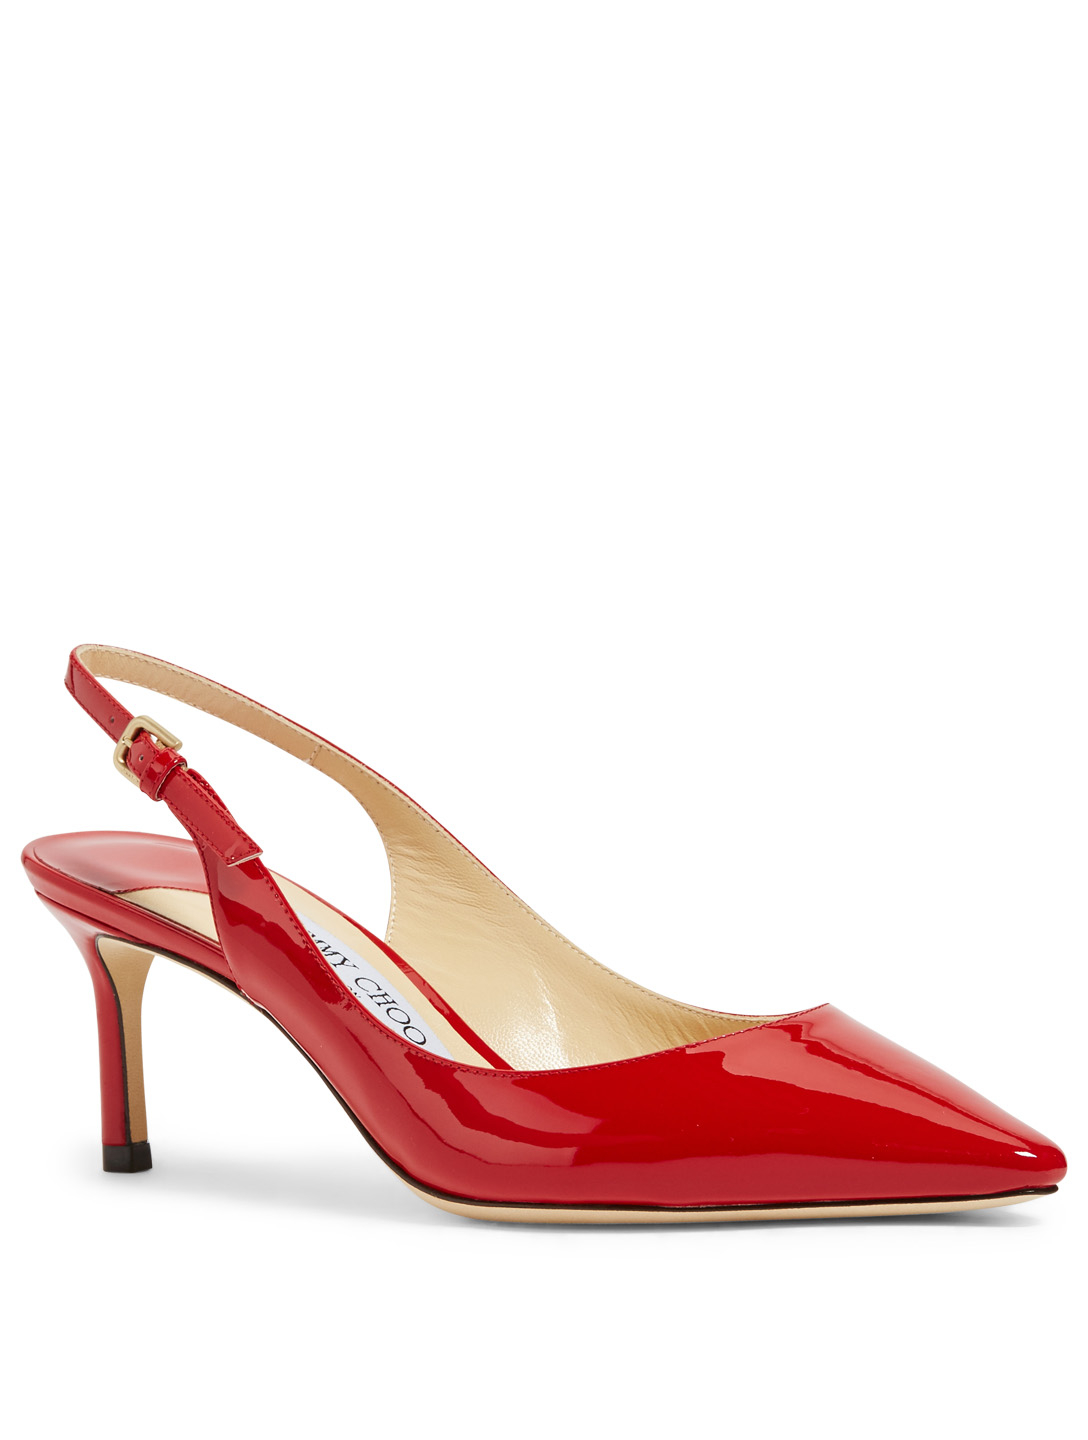 4a5eafc14362 ... JIMMY CHOO Erin 60 Patent Leather Slingback Pumps Womens Red ...